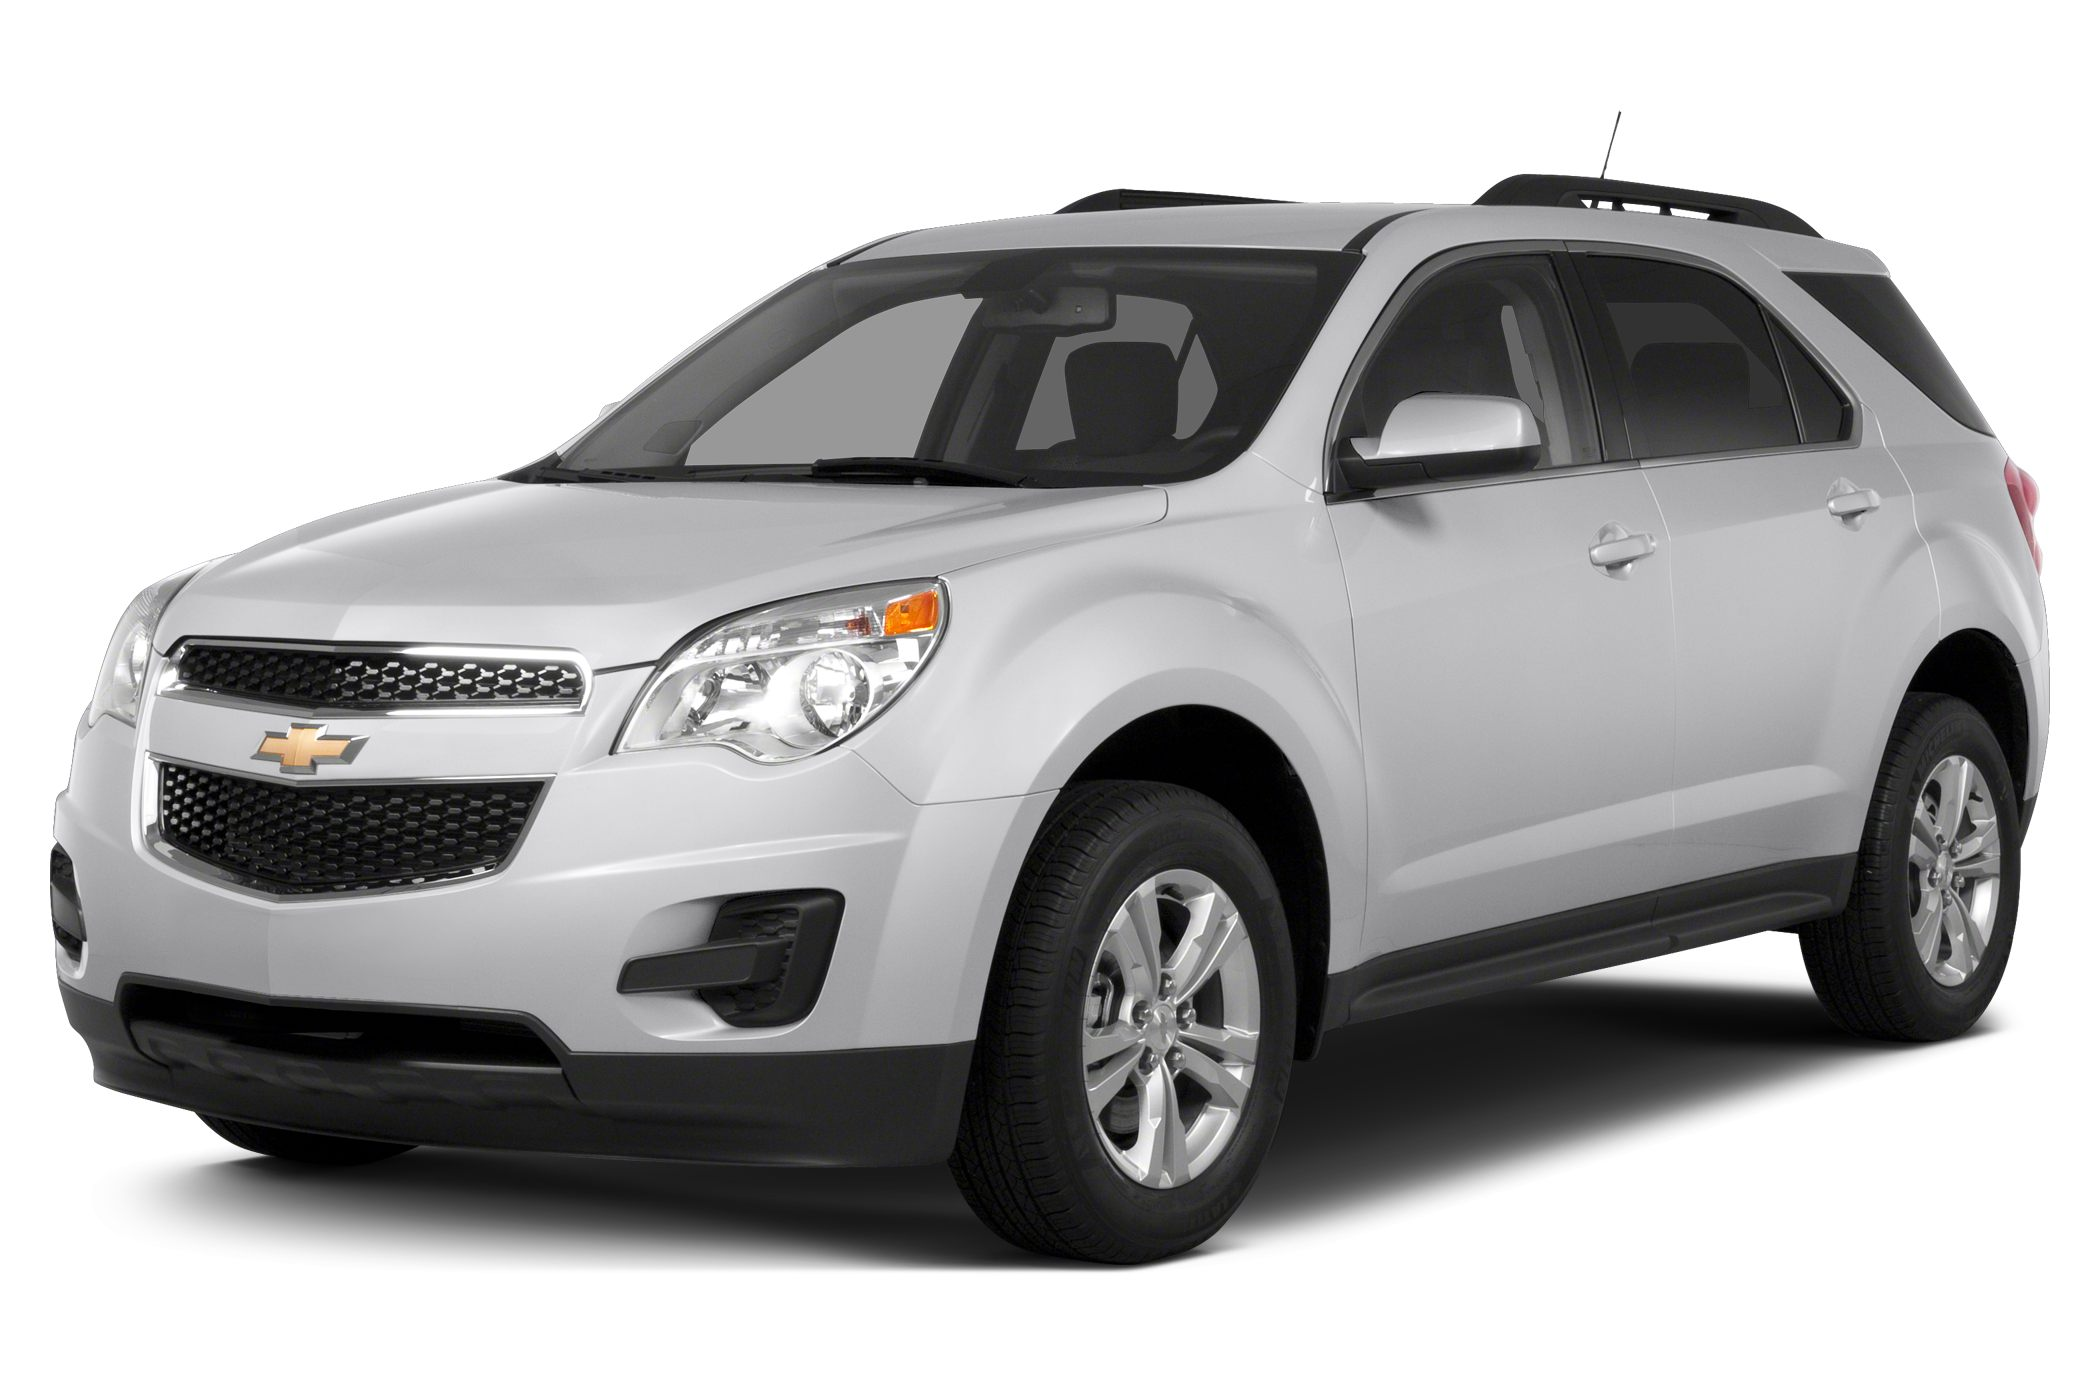 2013 Chevrolet Equinox 1LT SUV for sale in Estero for $22,988 with 21,737 miles.